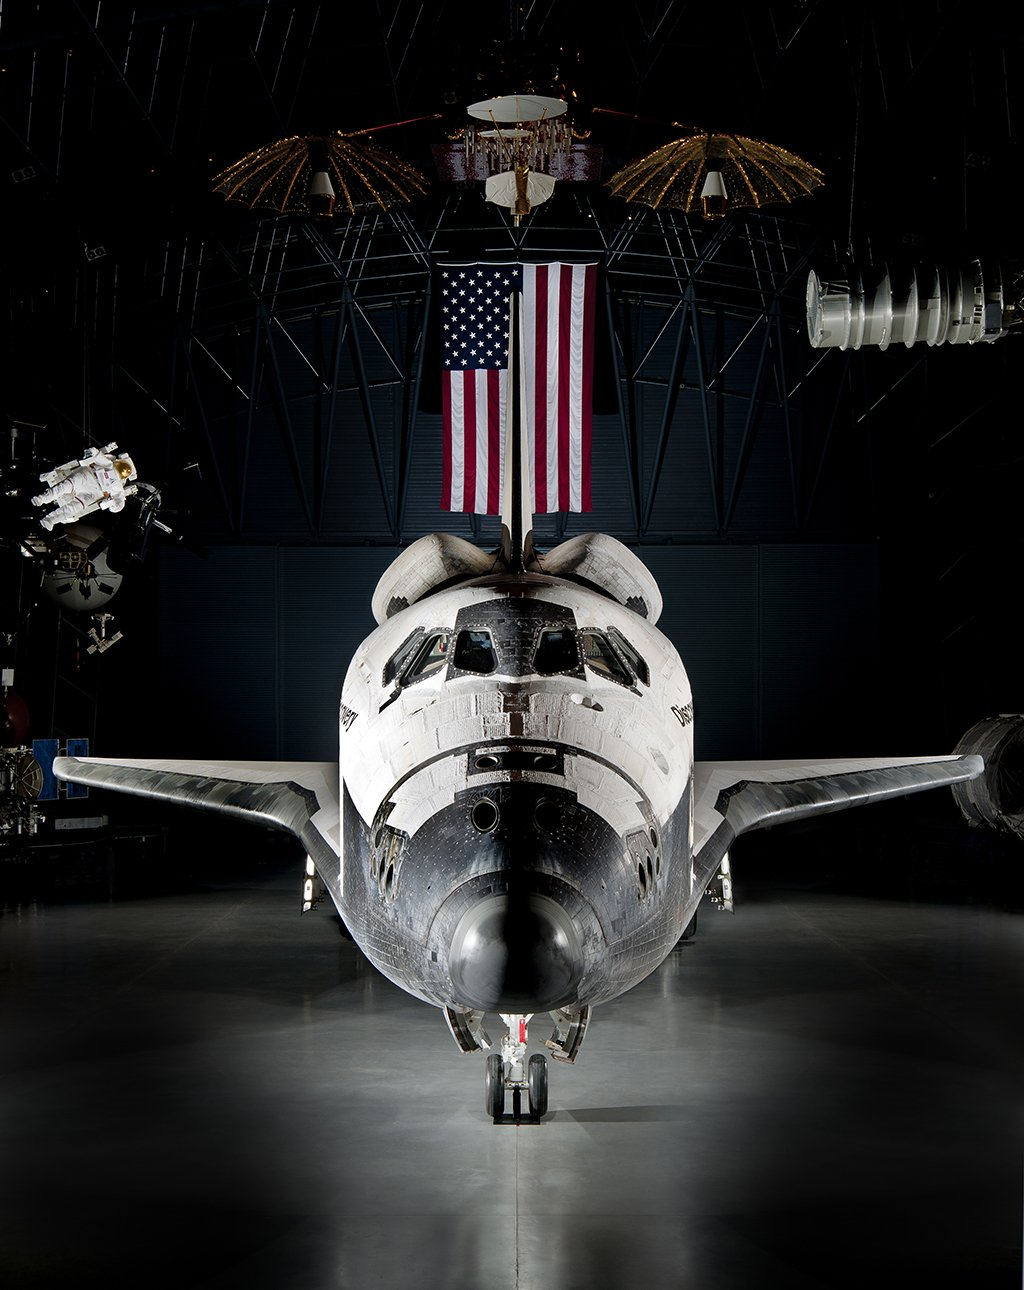 visit space shuttle discovery - photo #12